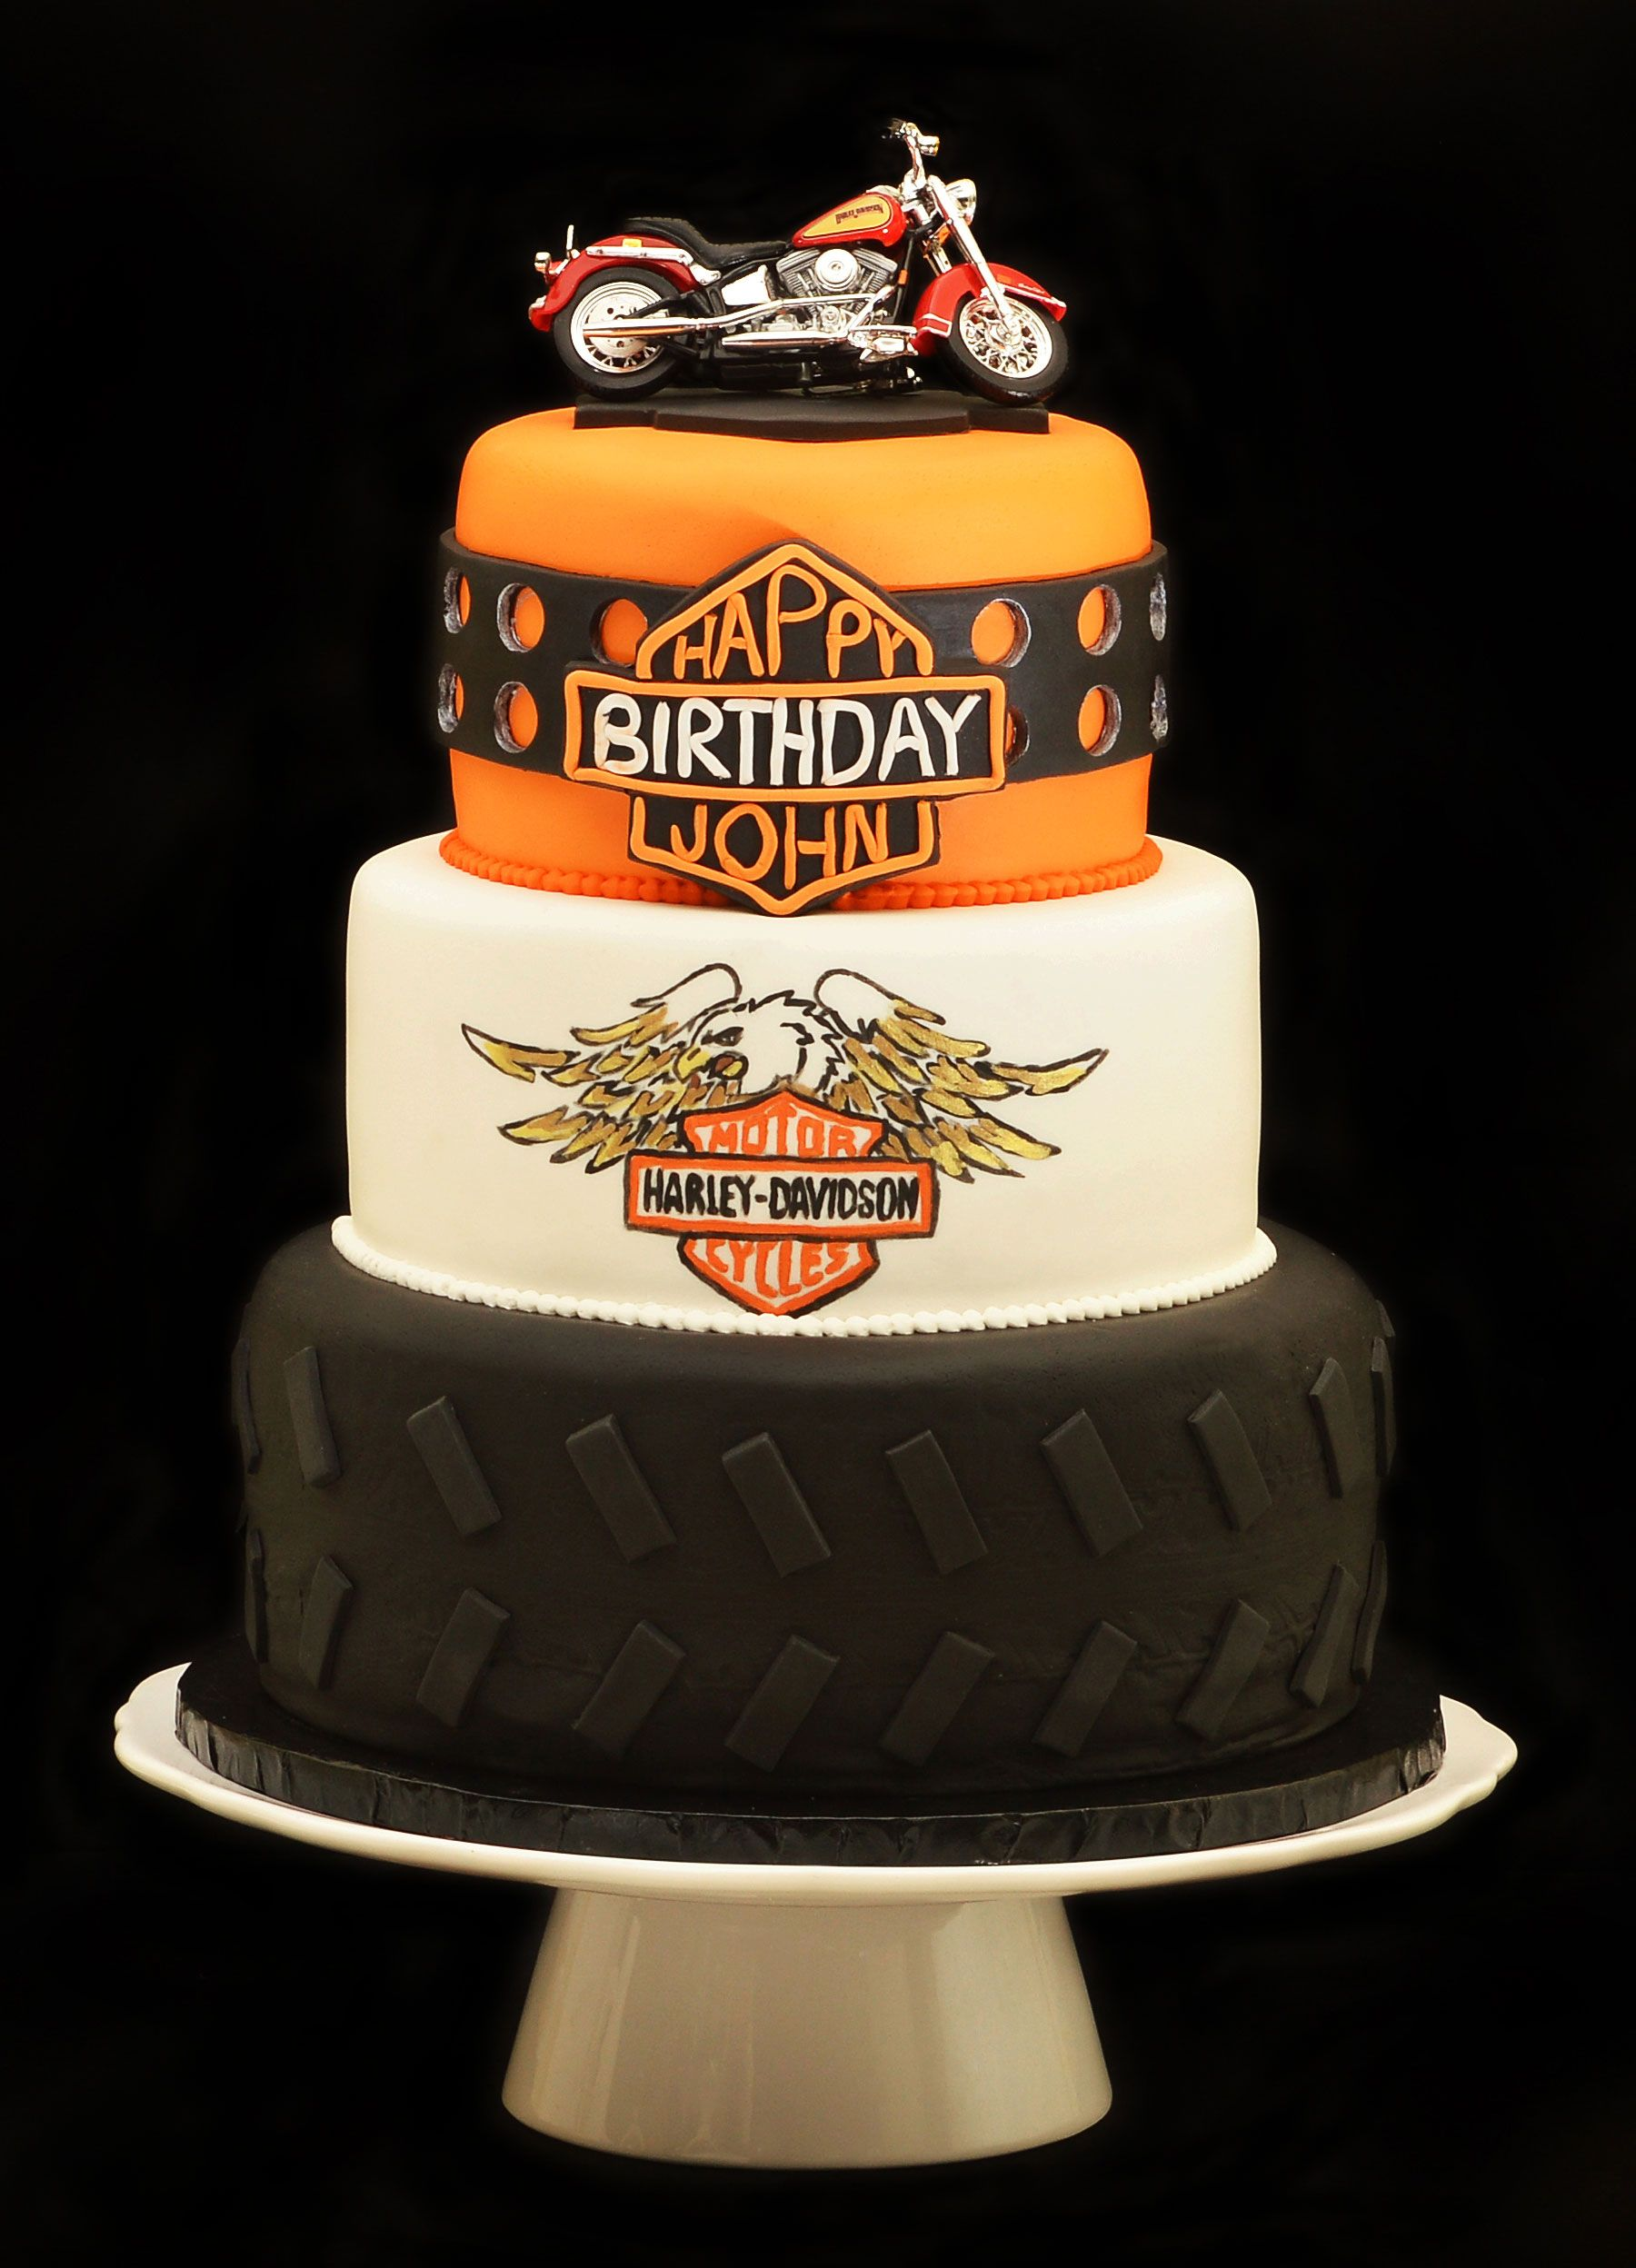 Harley Davidson Cake With Images Motorcycle Birthday Cakes